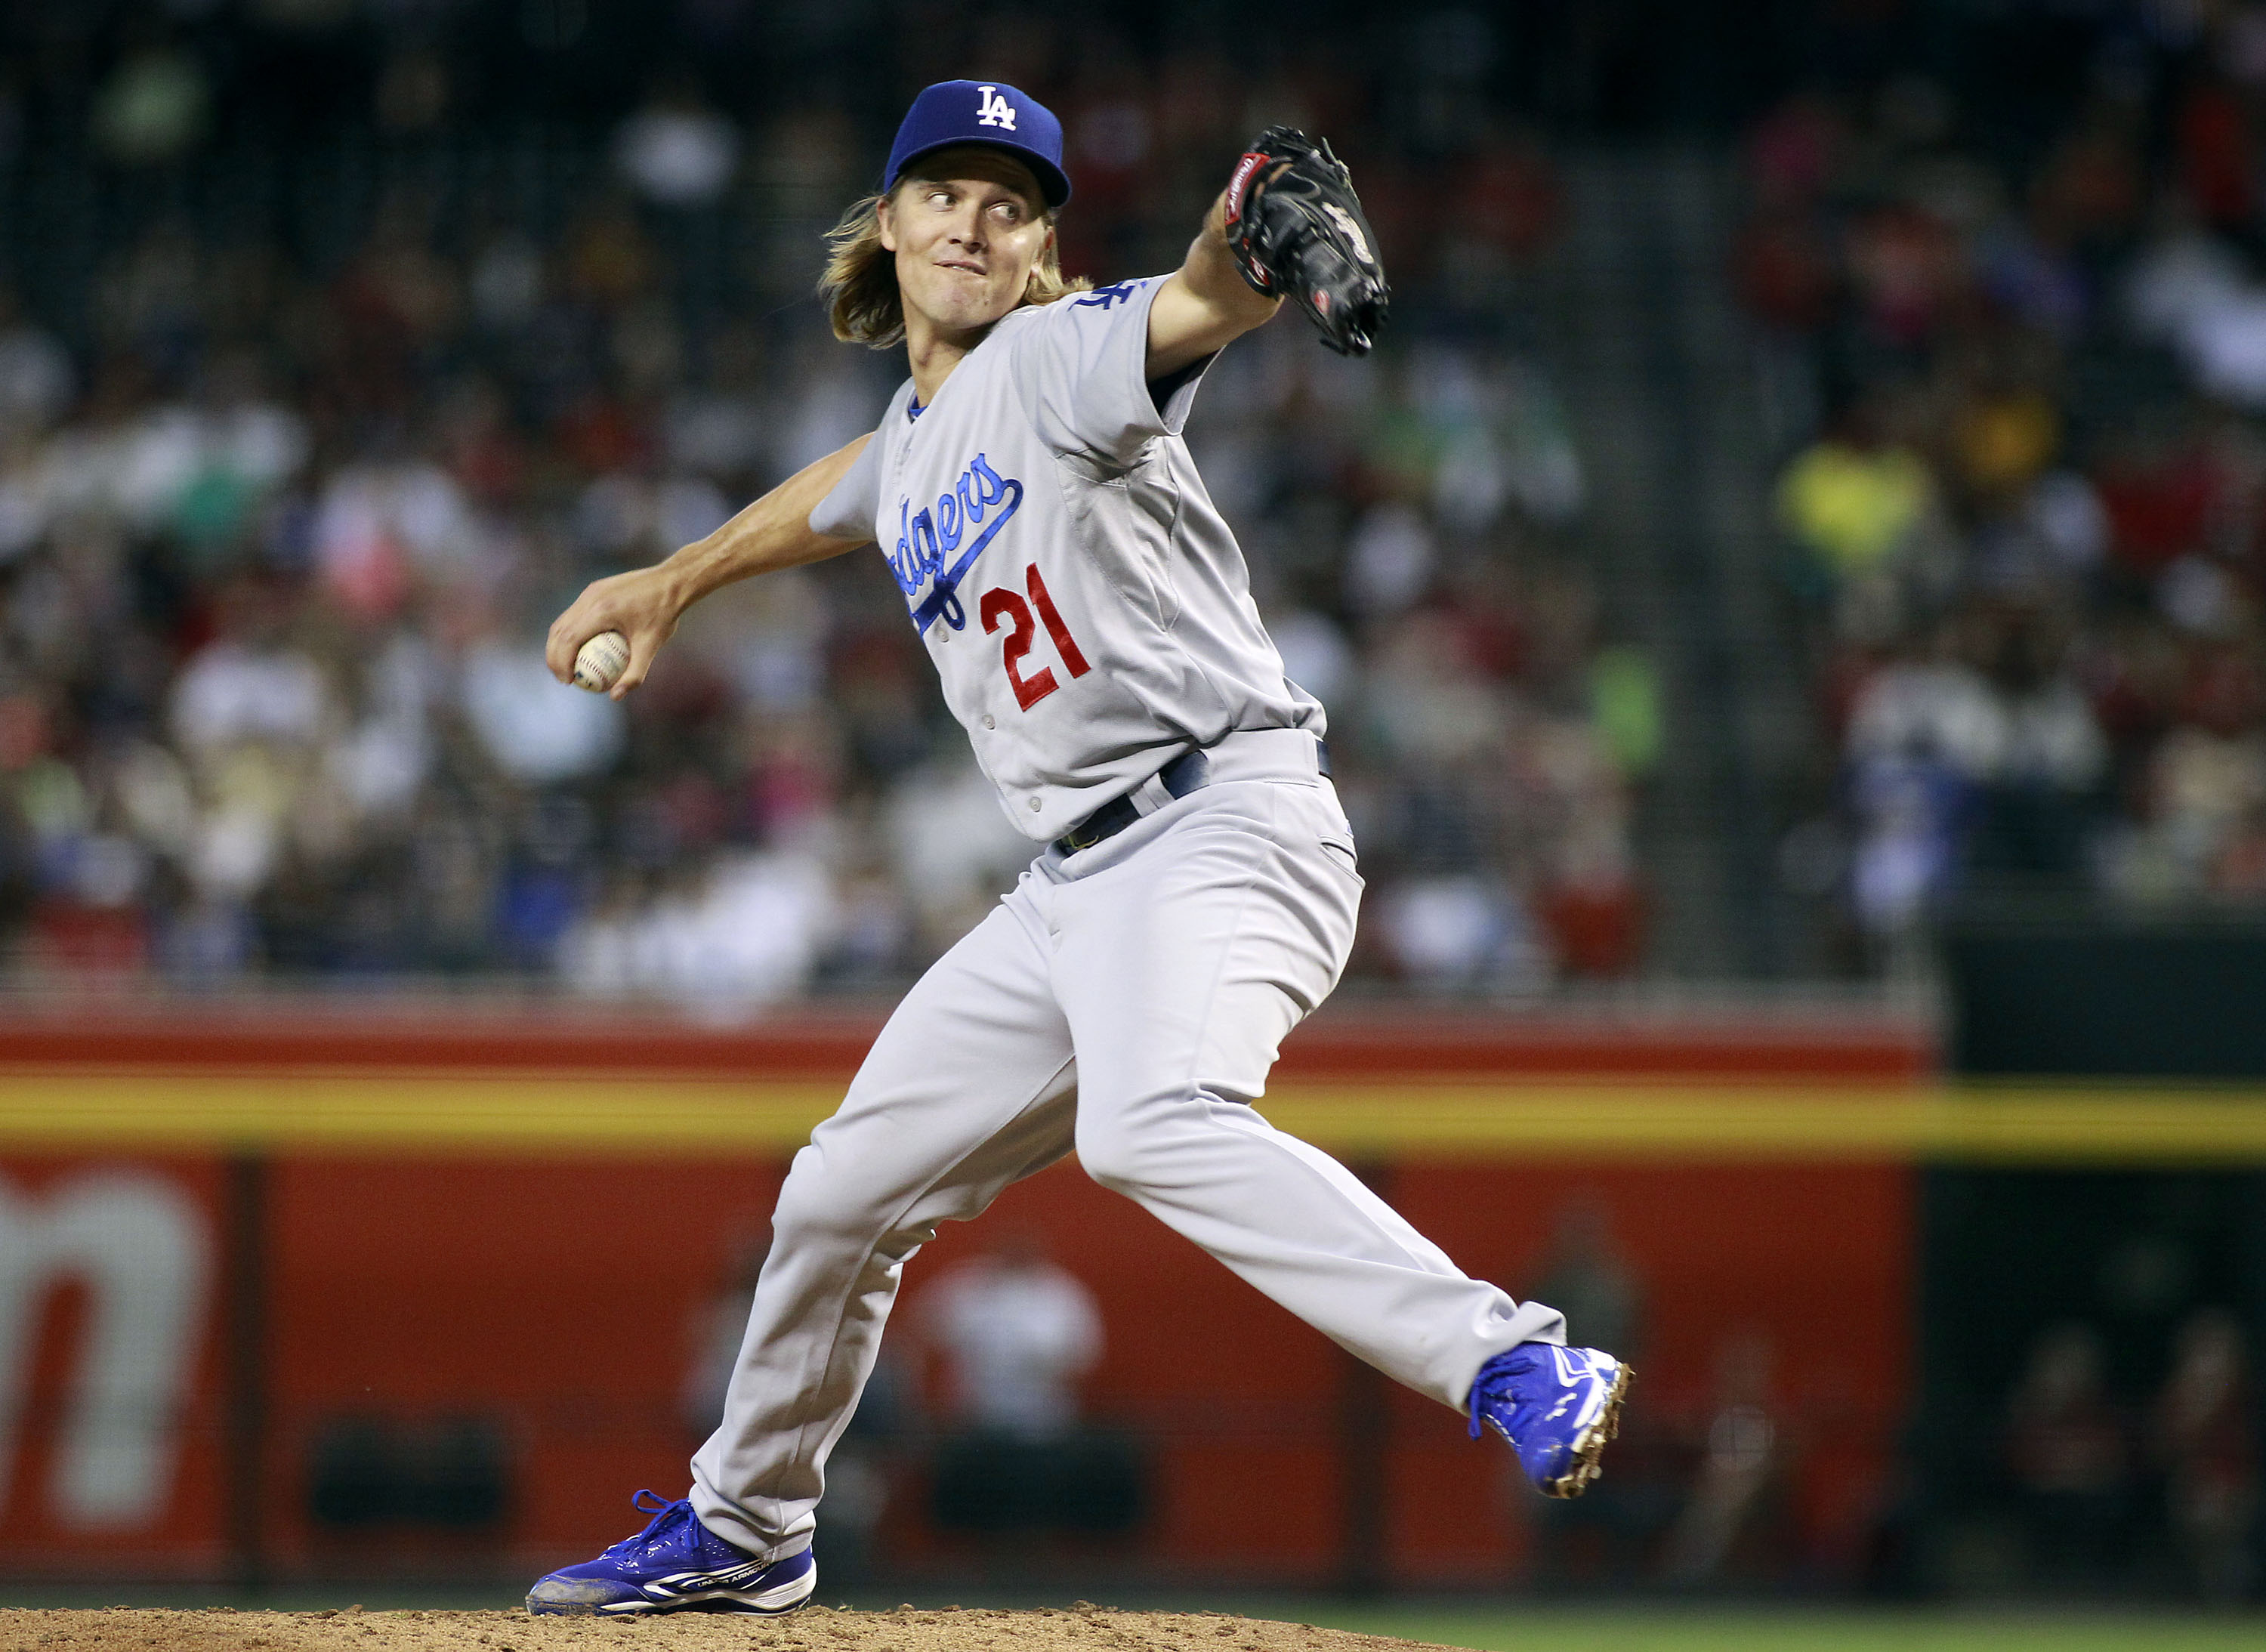 Los Angeles Dodgers starting pitcher Zach Greinke throws against the Arizona Diamondbacks during the second inning of a baseball game, Sunday, Sept. 13, 2015, in Phoenix. (AP Photo/Ralph Freso)